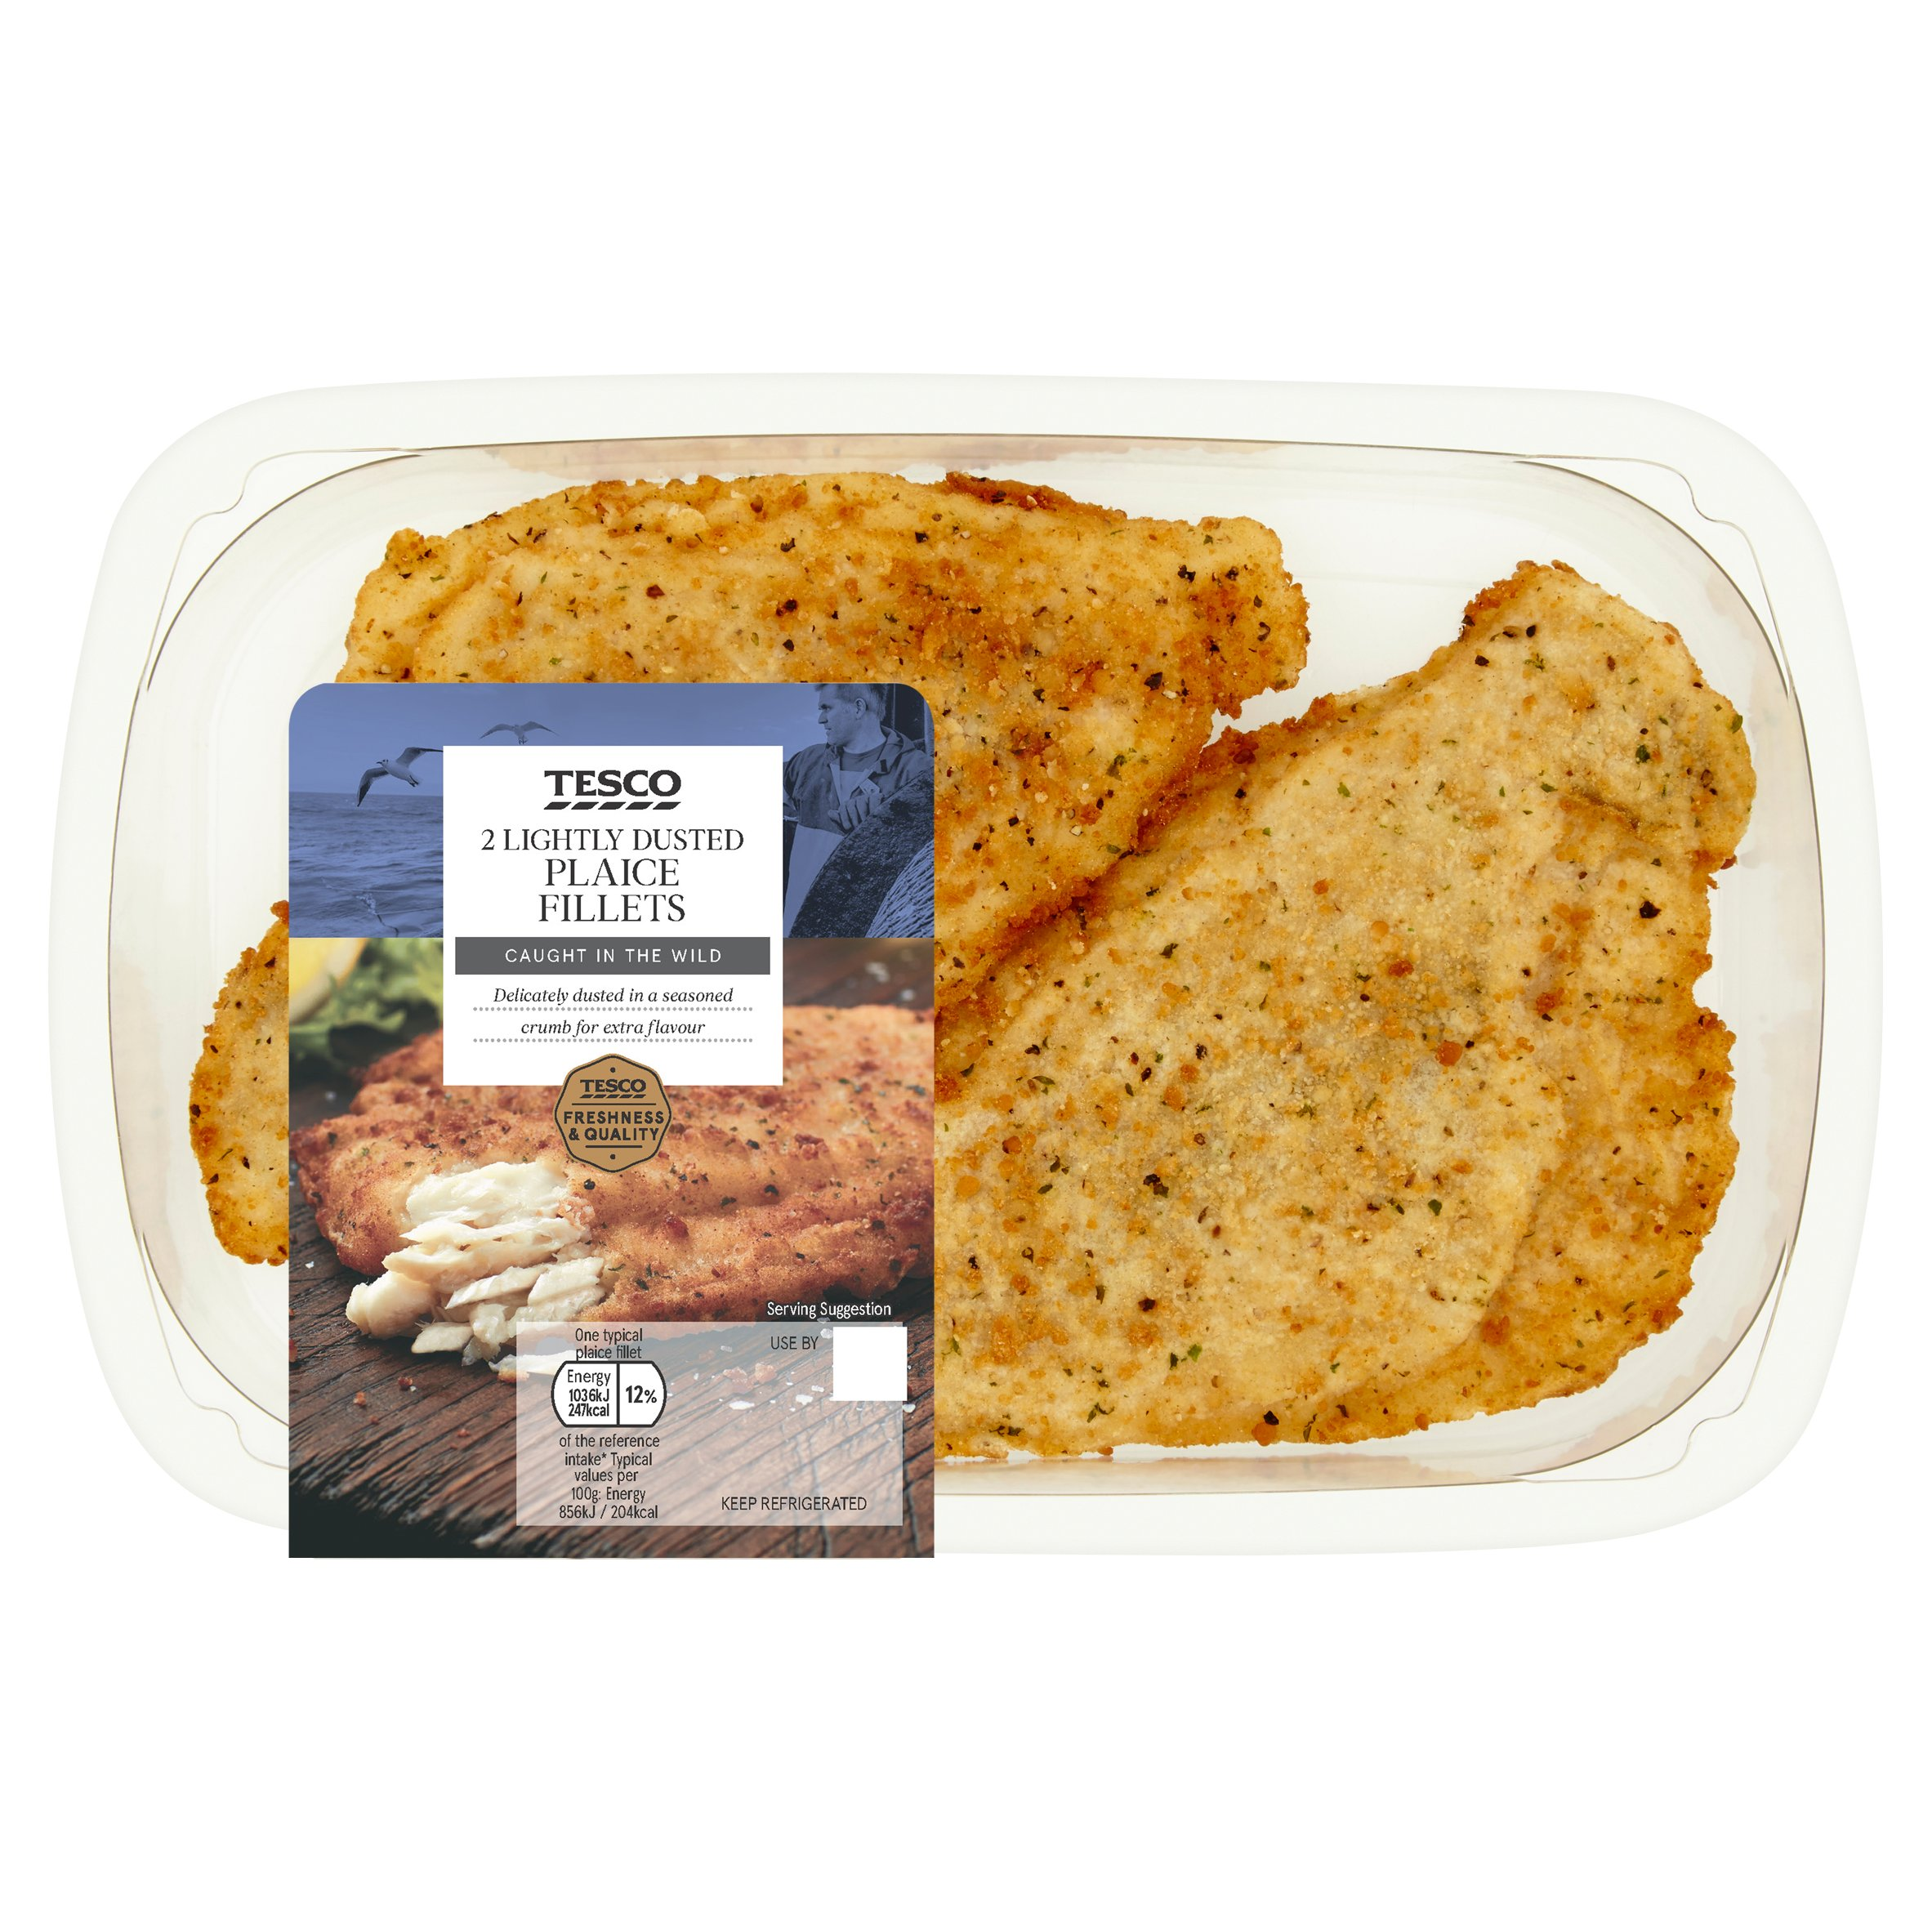 Tesco Lightly Dusted Plaice Fillets 265G